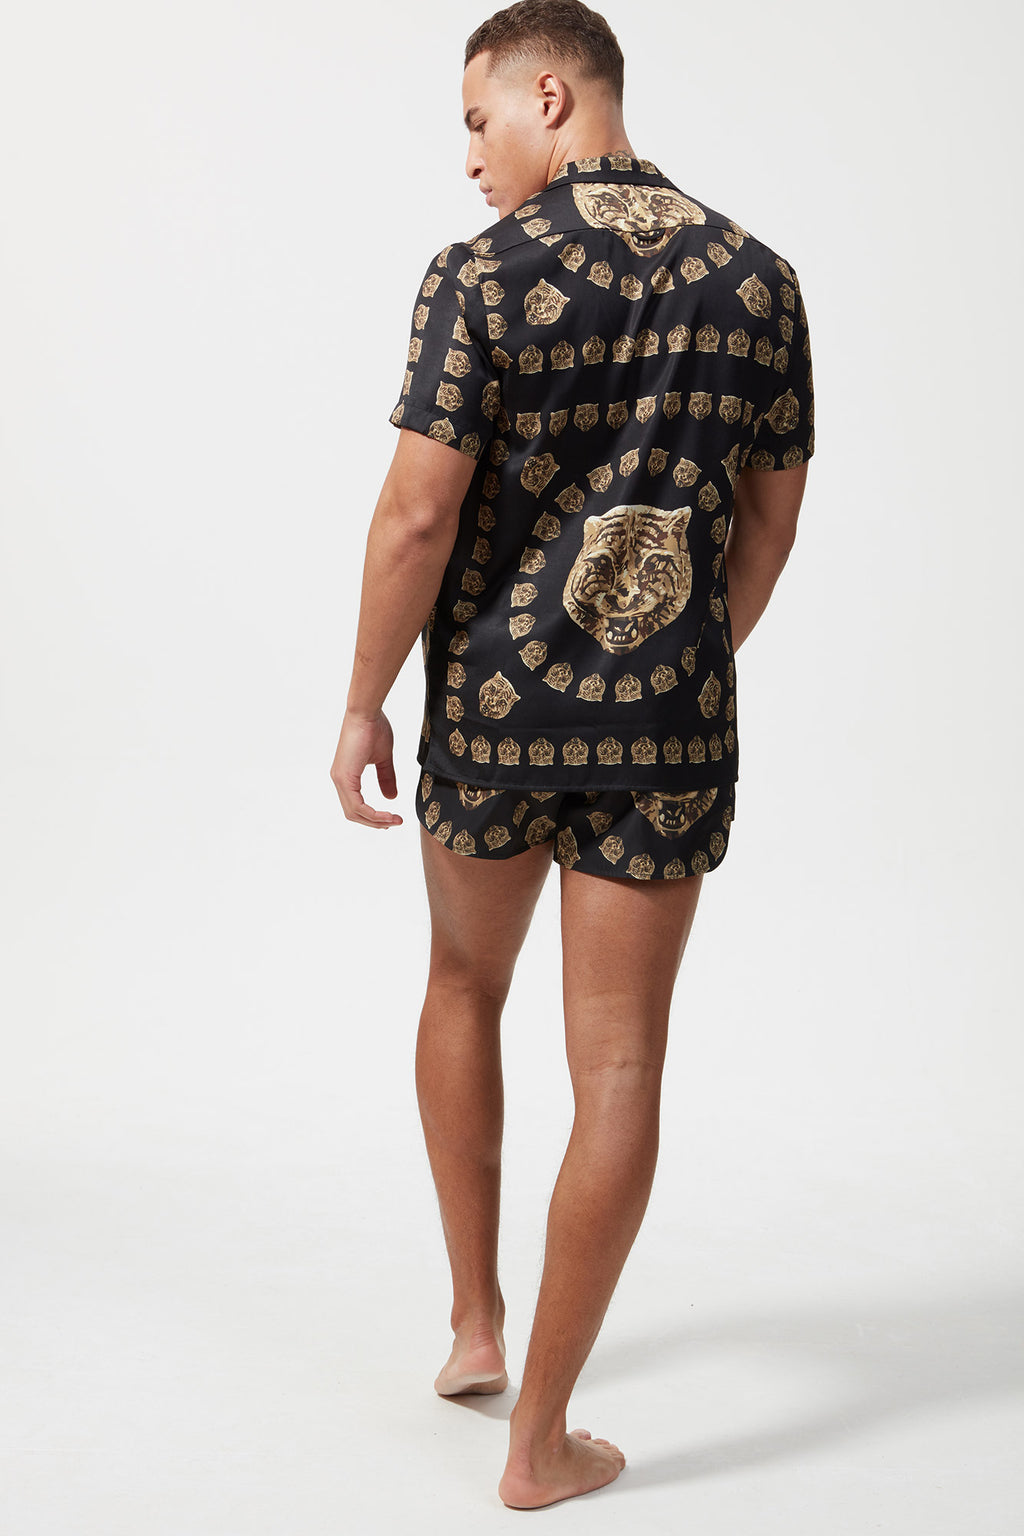 HERMANO TIGER PRINT SHORT SLEEVE CUBAN SHIRT	BLACK/GOLD